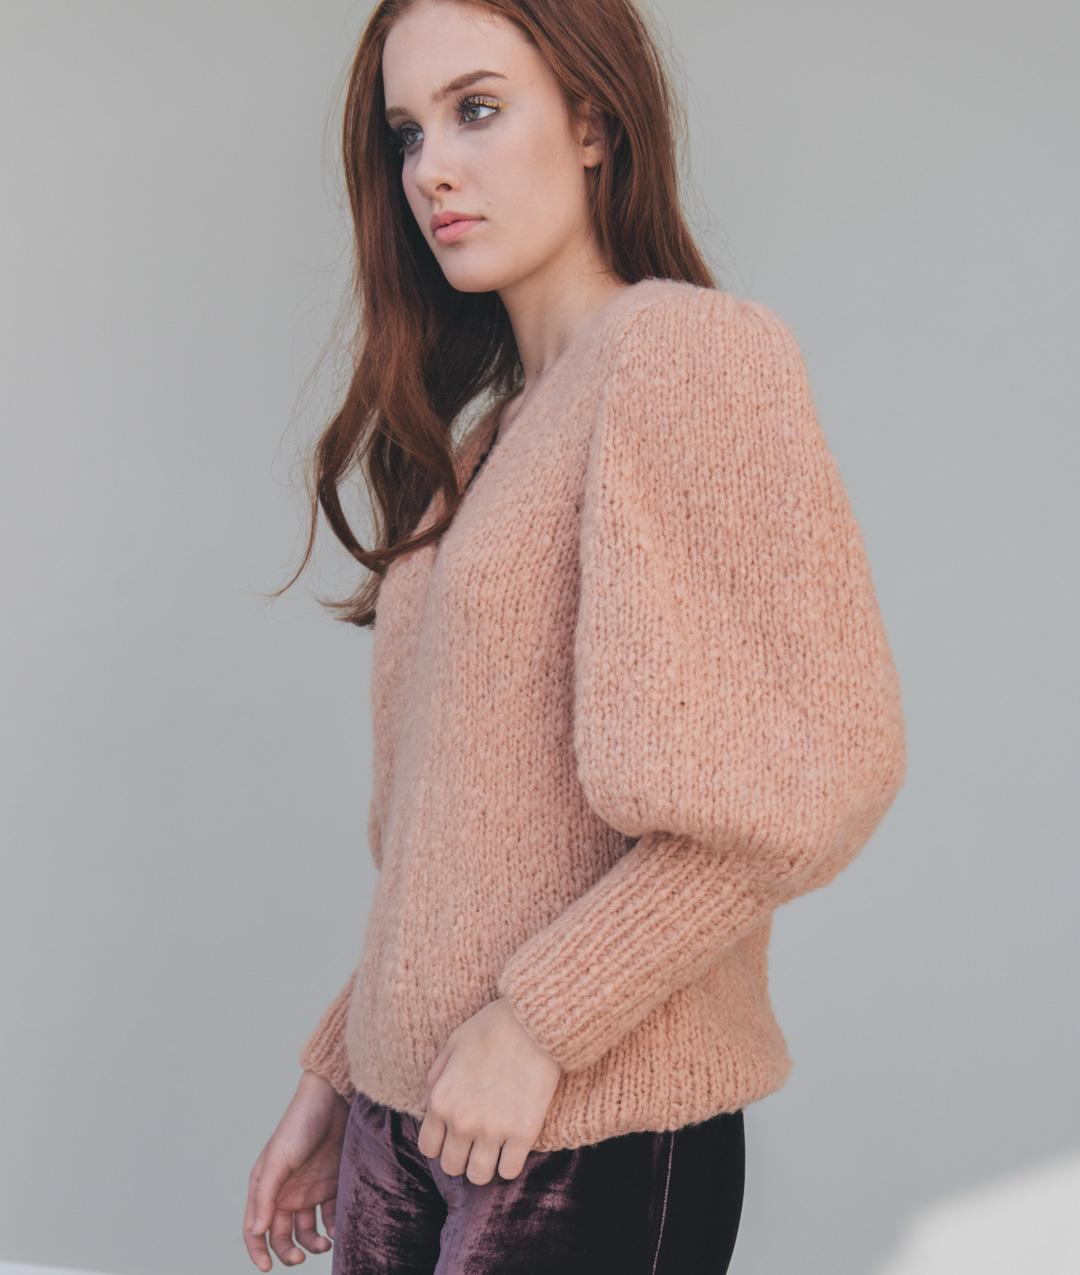 Sweaters and Tops - Wool - CREME CARAMEL SWEATER - 1